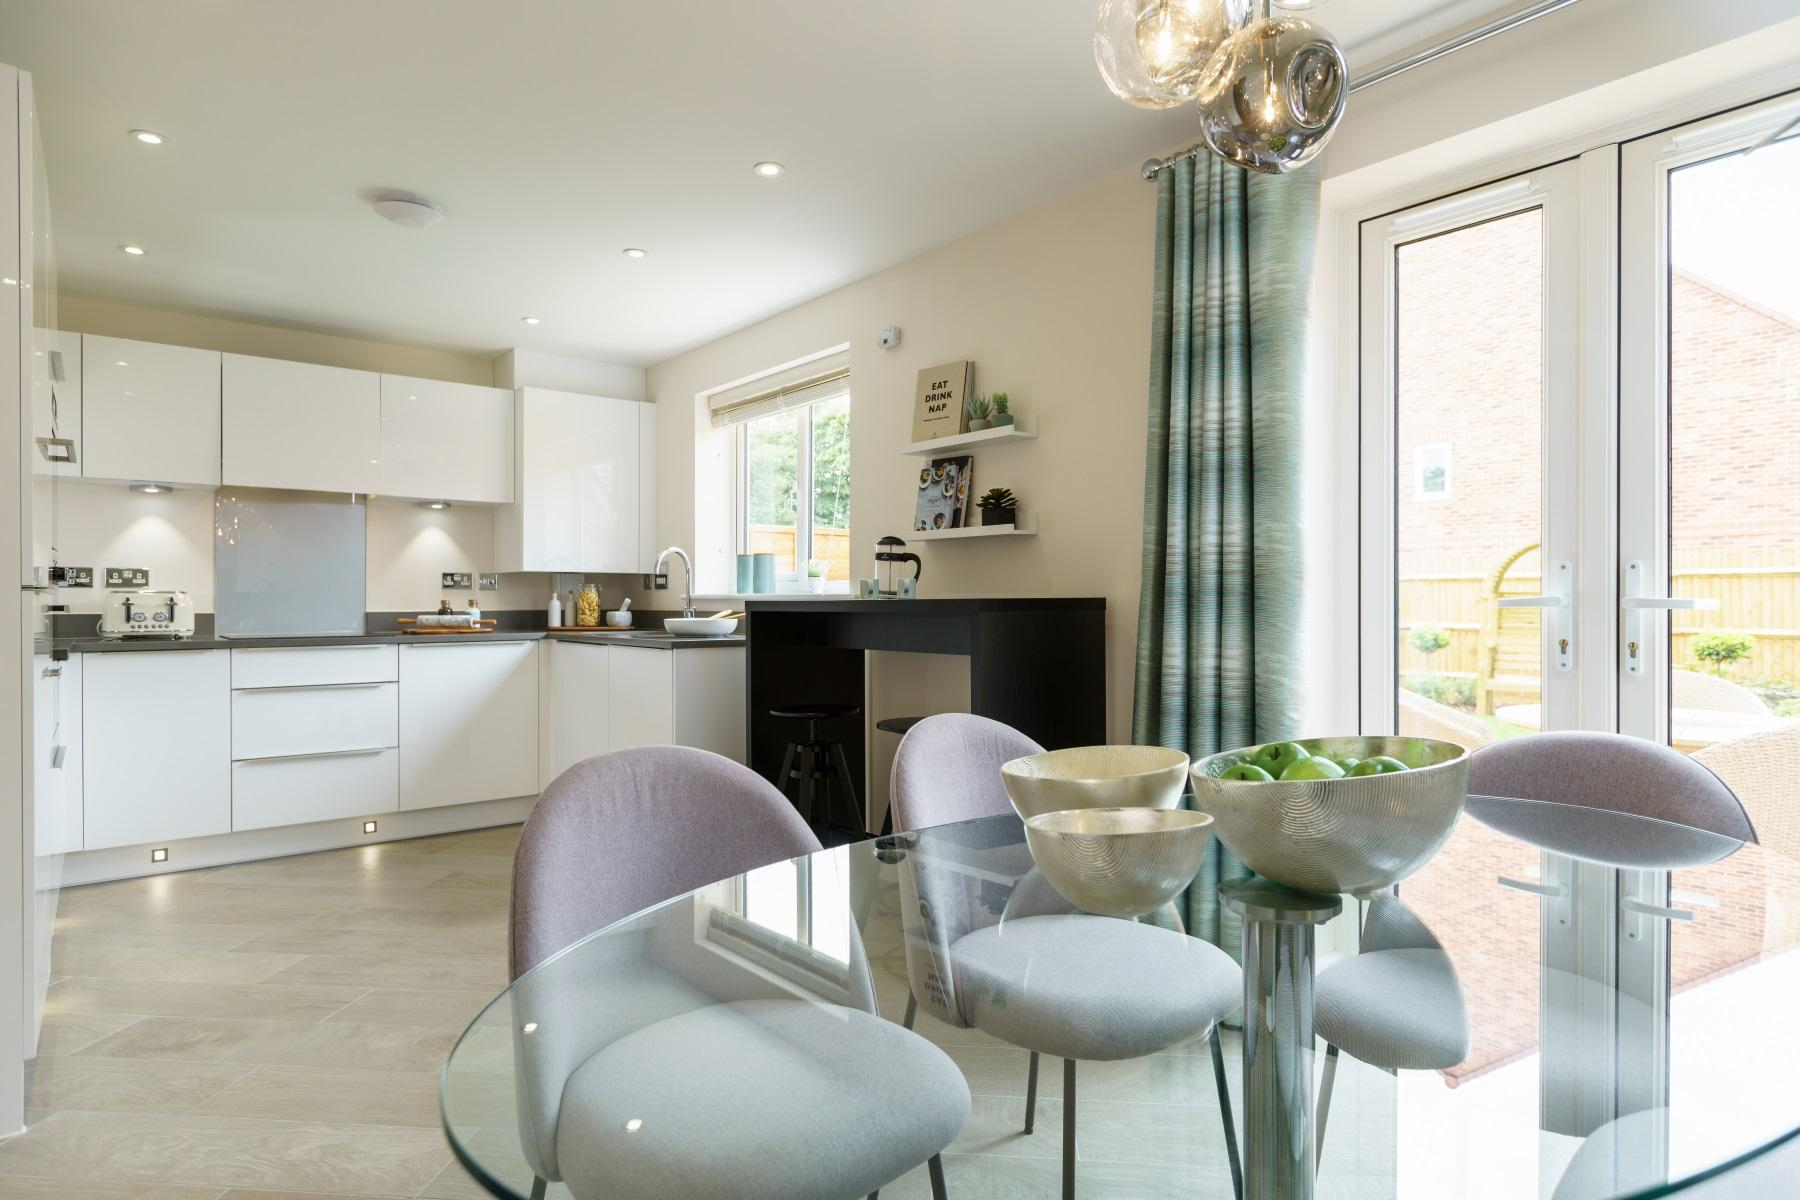 TW Exeter - Riverside Walk - Huxford example kitchen 2